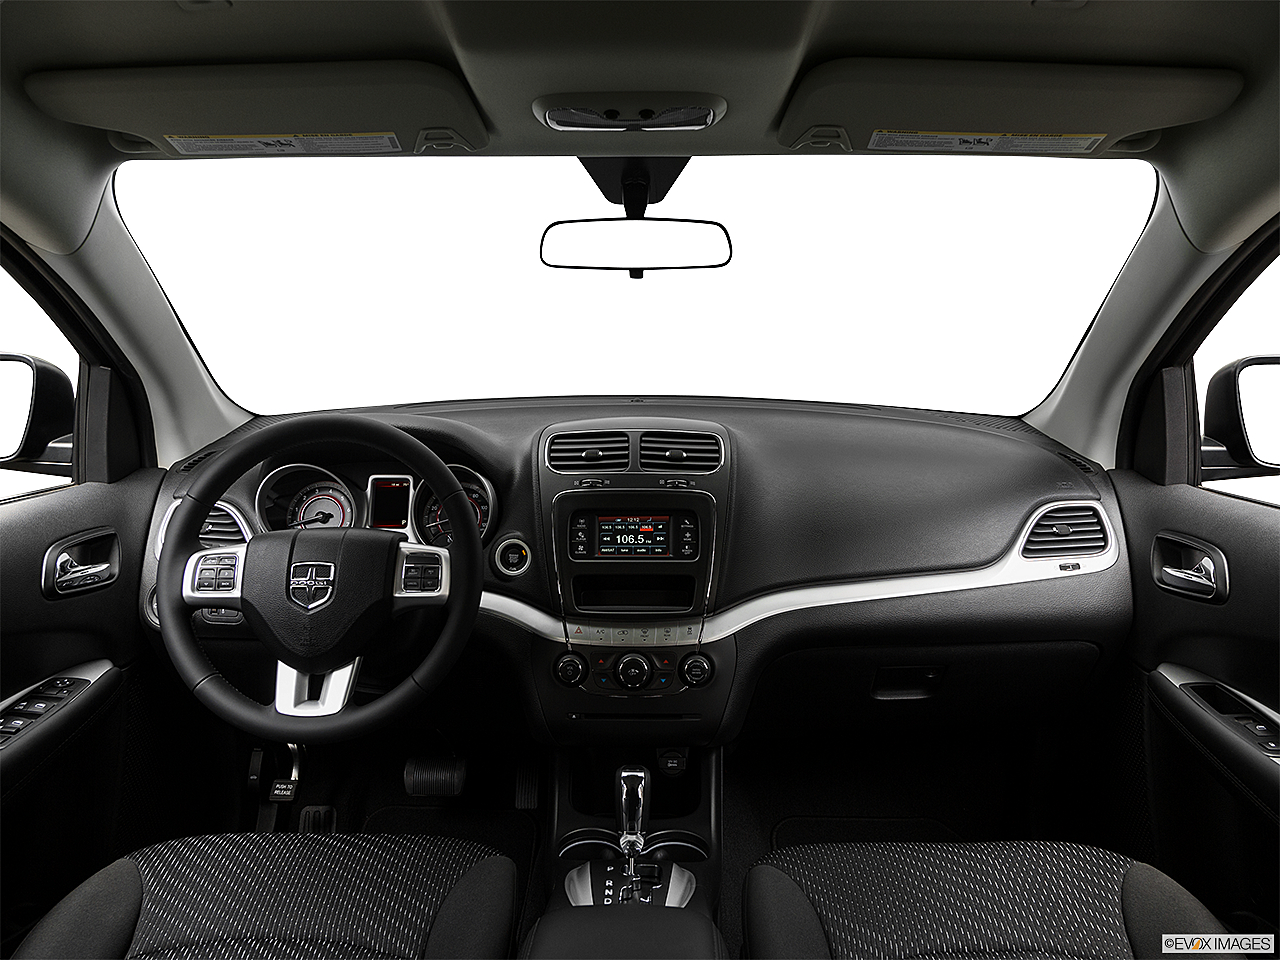 2018 Dodge Journey SXT, centered wide dash shot